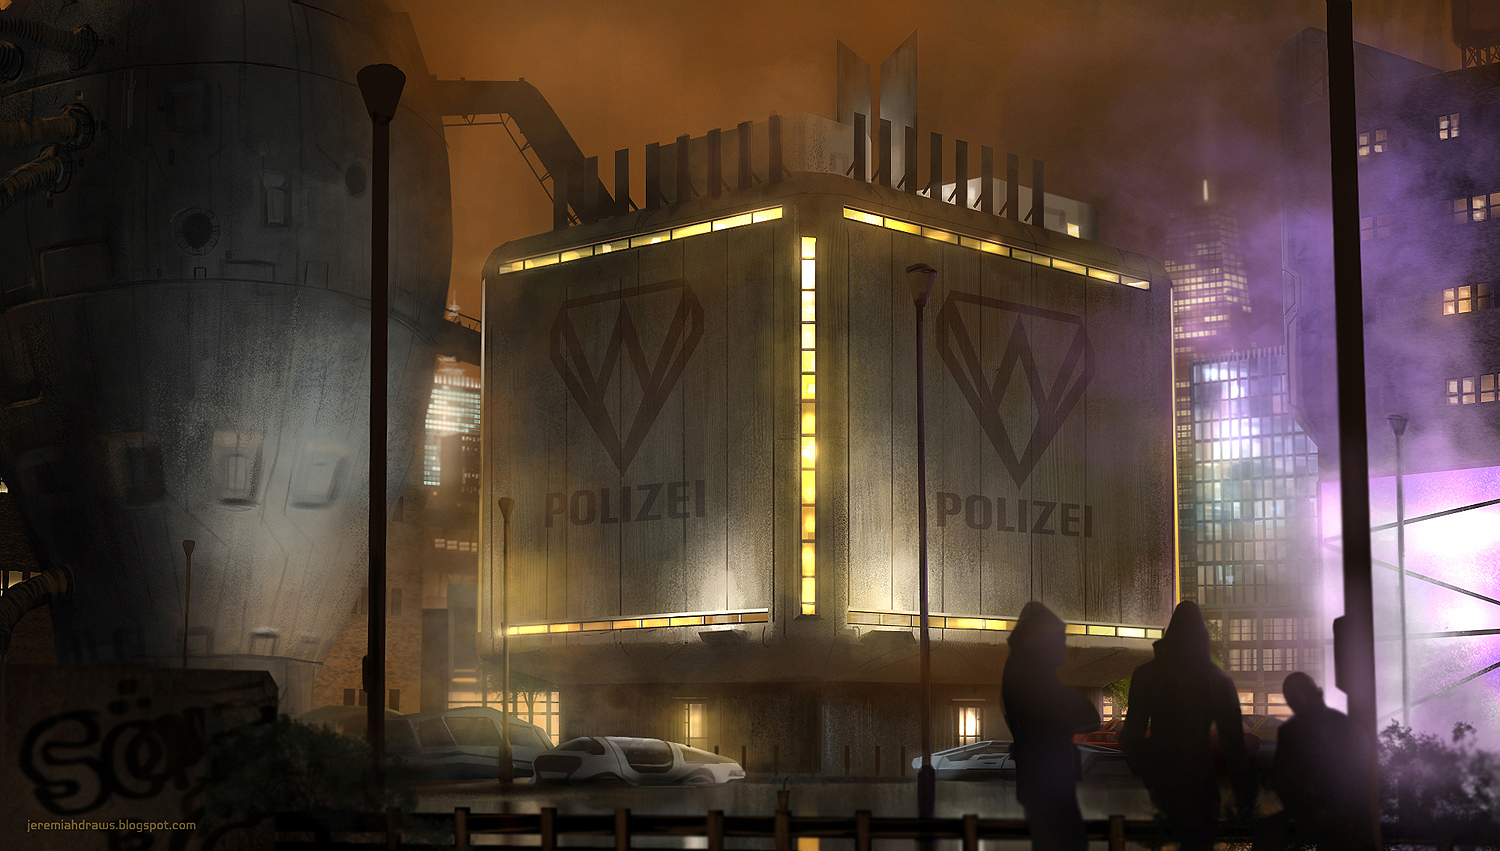 Police+station+by+Jeremiah+Humphries+.jpg